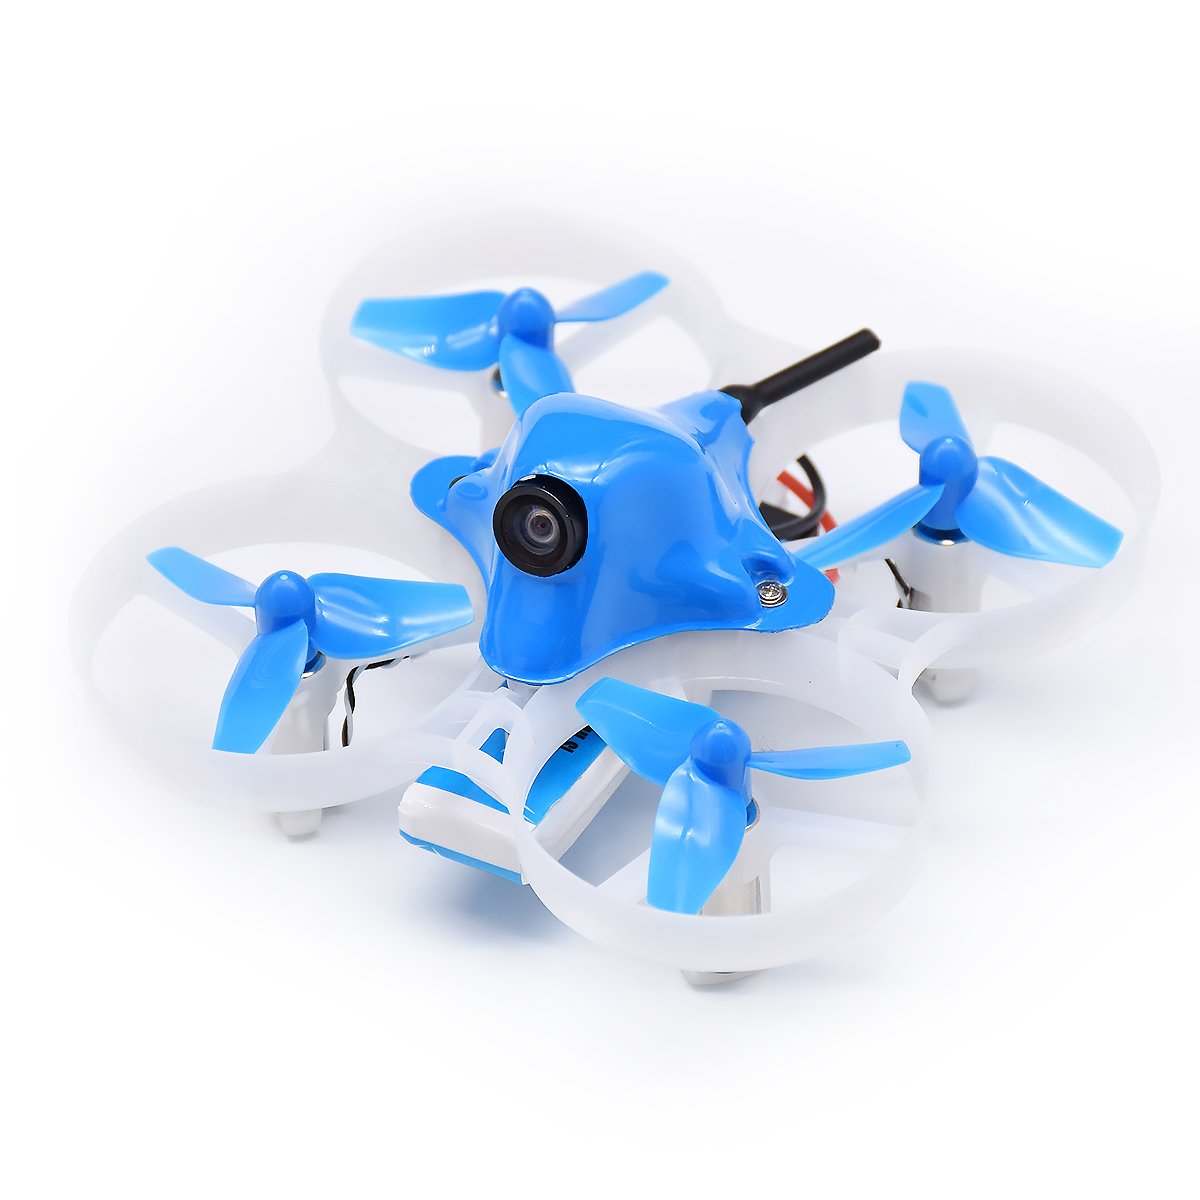 Beta85 BNF Micro Whoop Quadcopter 8520/S-FHSS受信機+OSD付 完成機